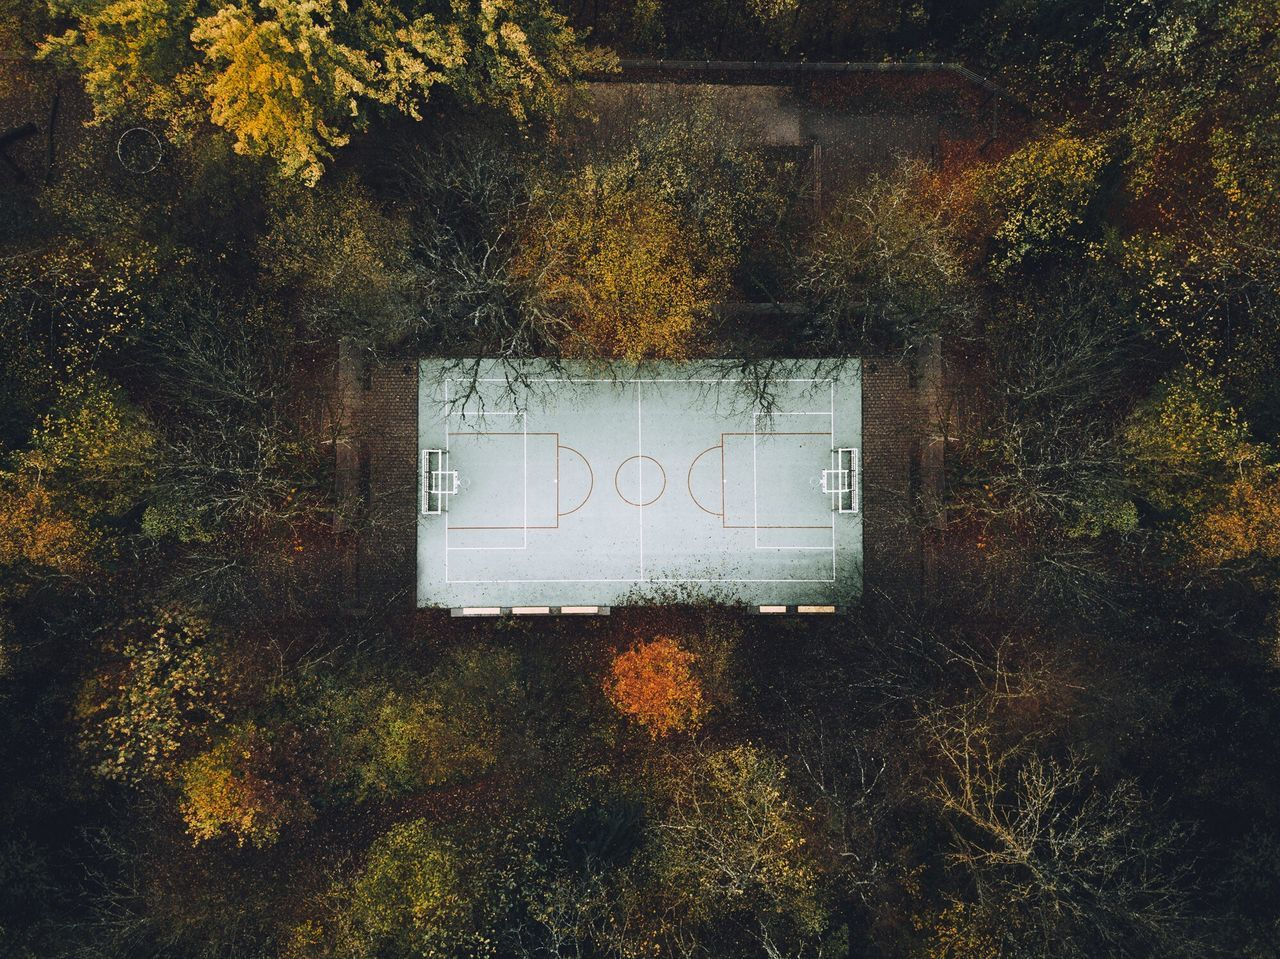 Drone Autumn leaf day outdoors no people Tree Nature close-up dronephotography drone photography Field Court Basketball basketball court